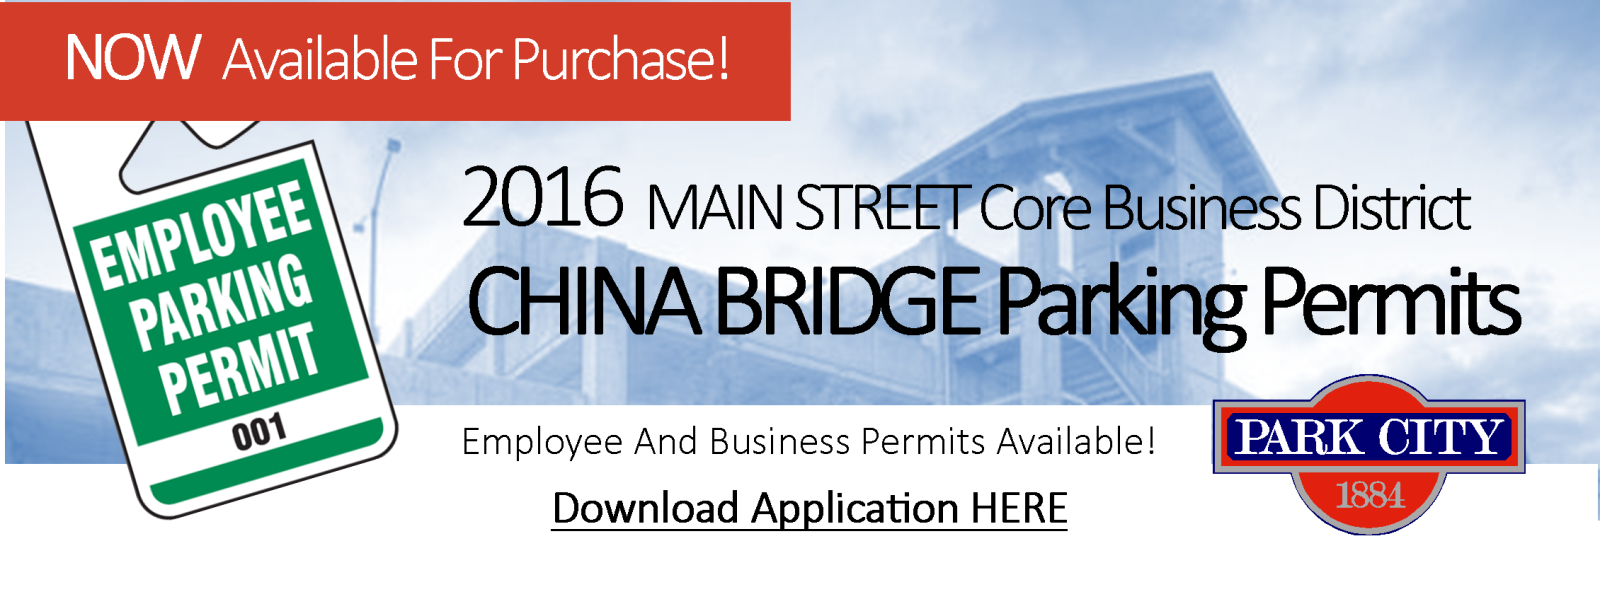 China Bridge Permits Available